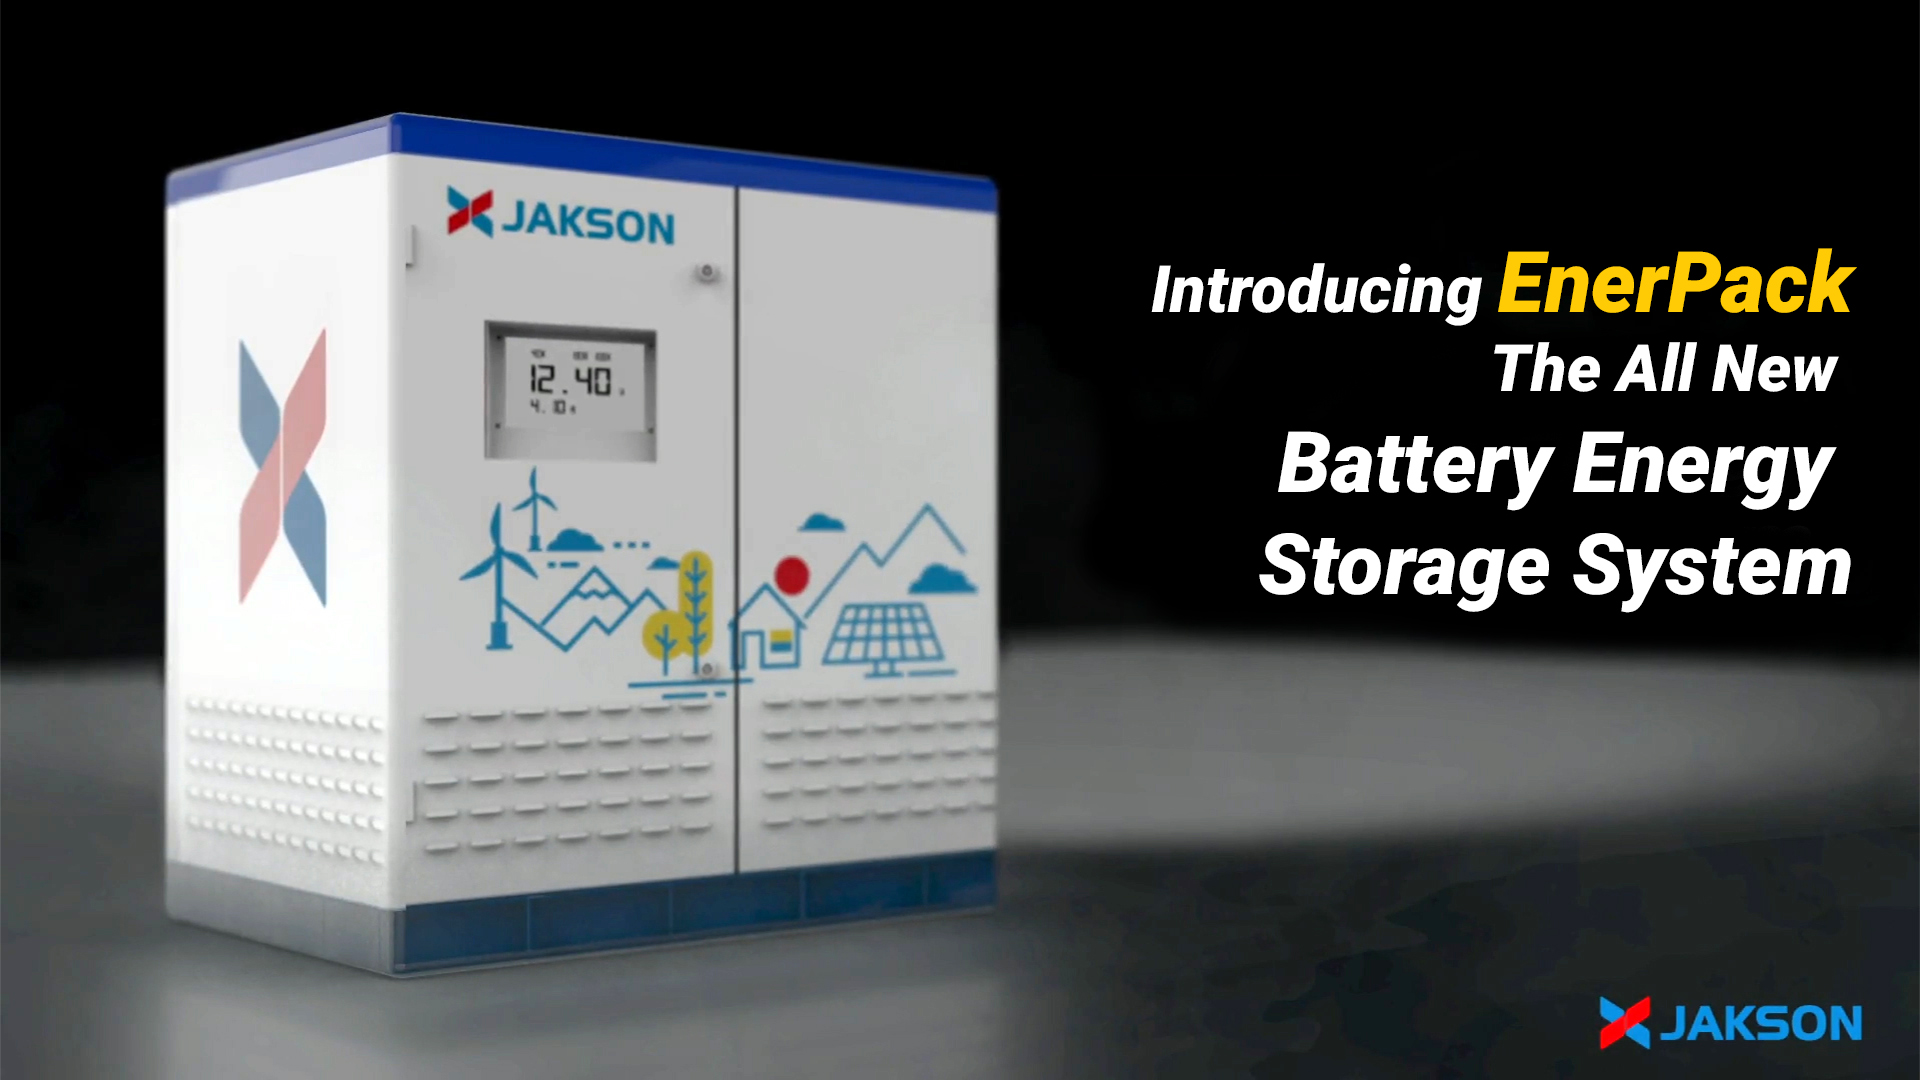 Launching EnerPack, the new Battery Energy Storage System